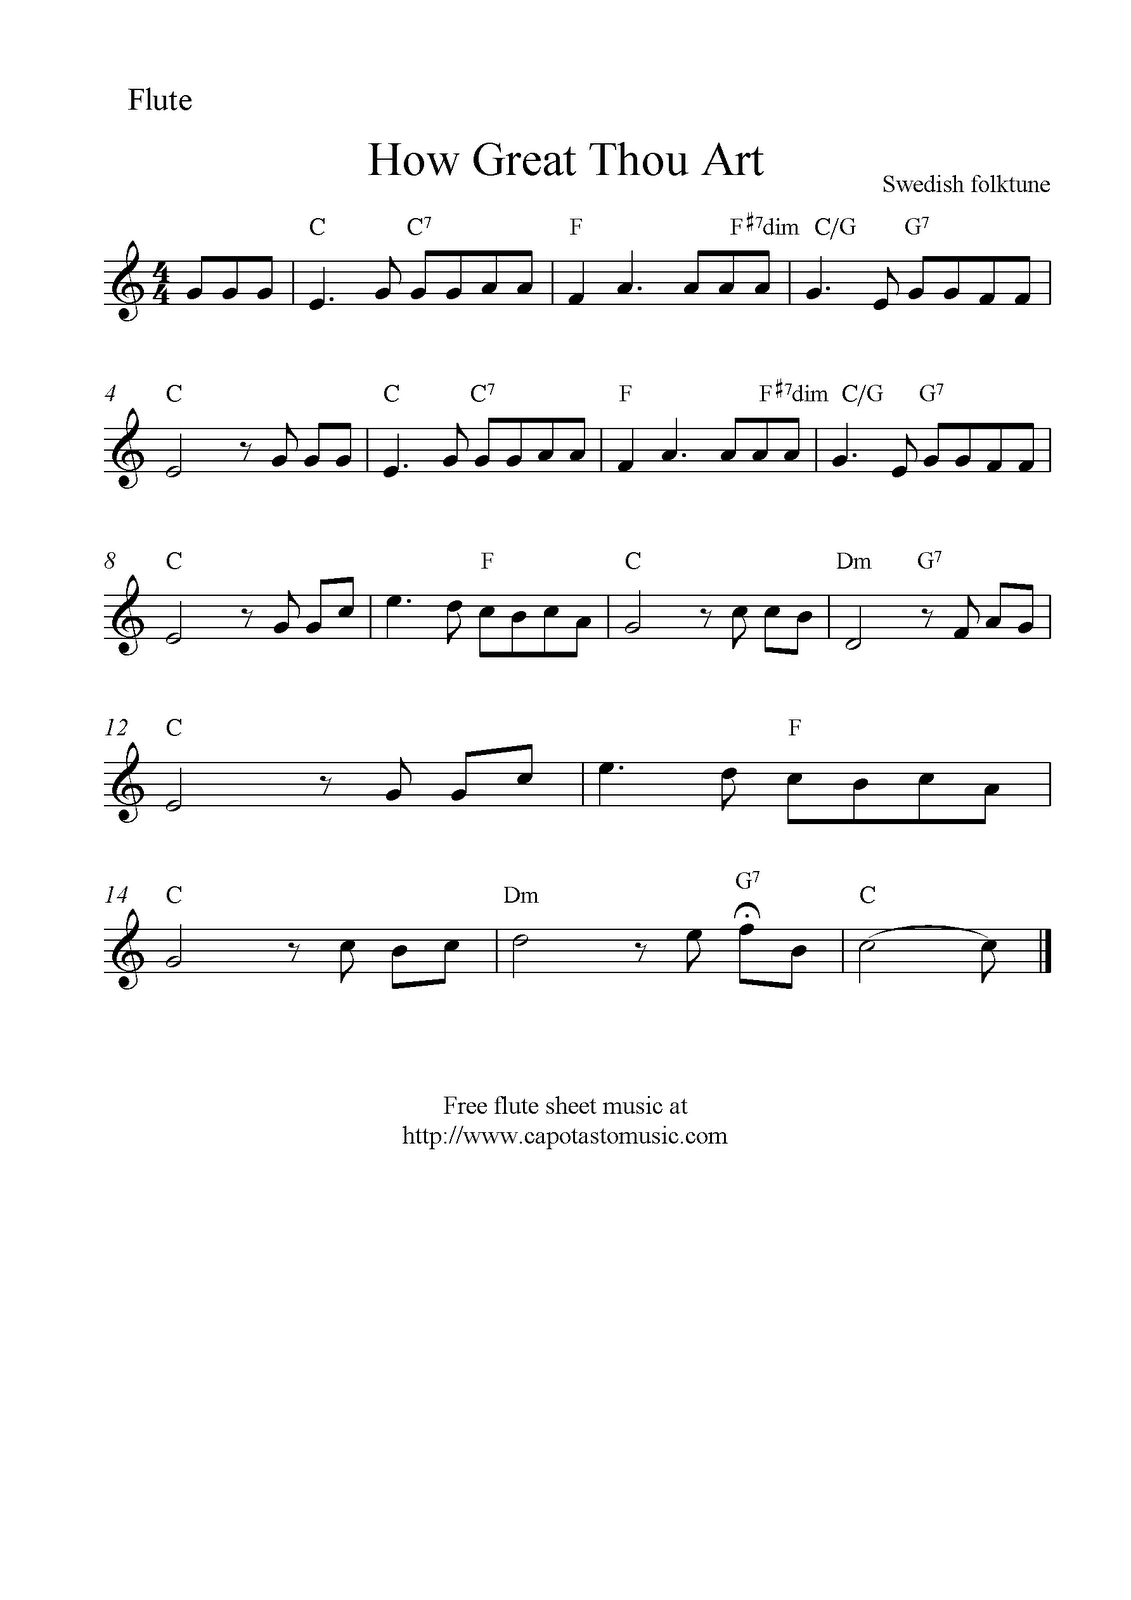 How Great Thou Art, Free Christian Flute Sheet Music Notes - Free Printable Flute Music